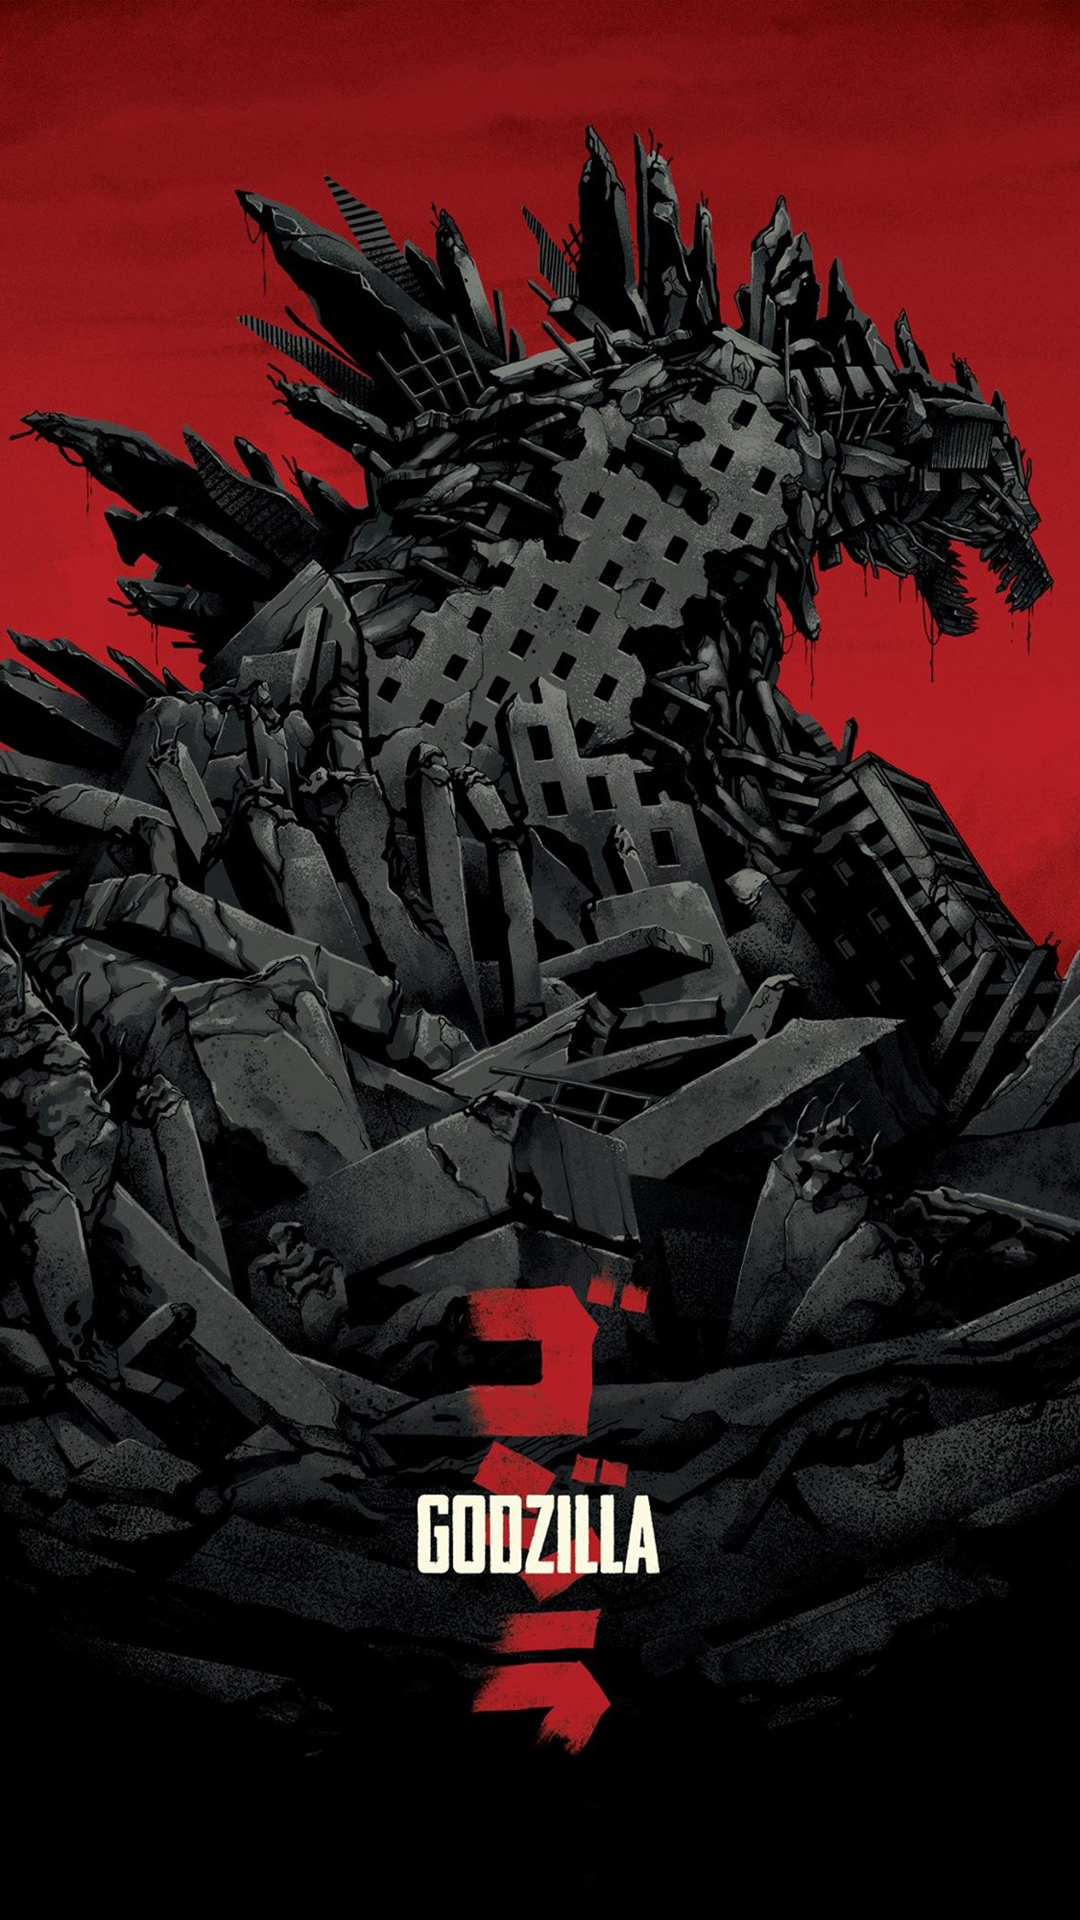 Godzilla 2014 htc one wallpaper